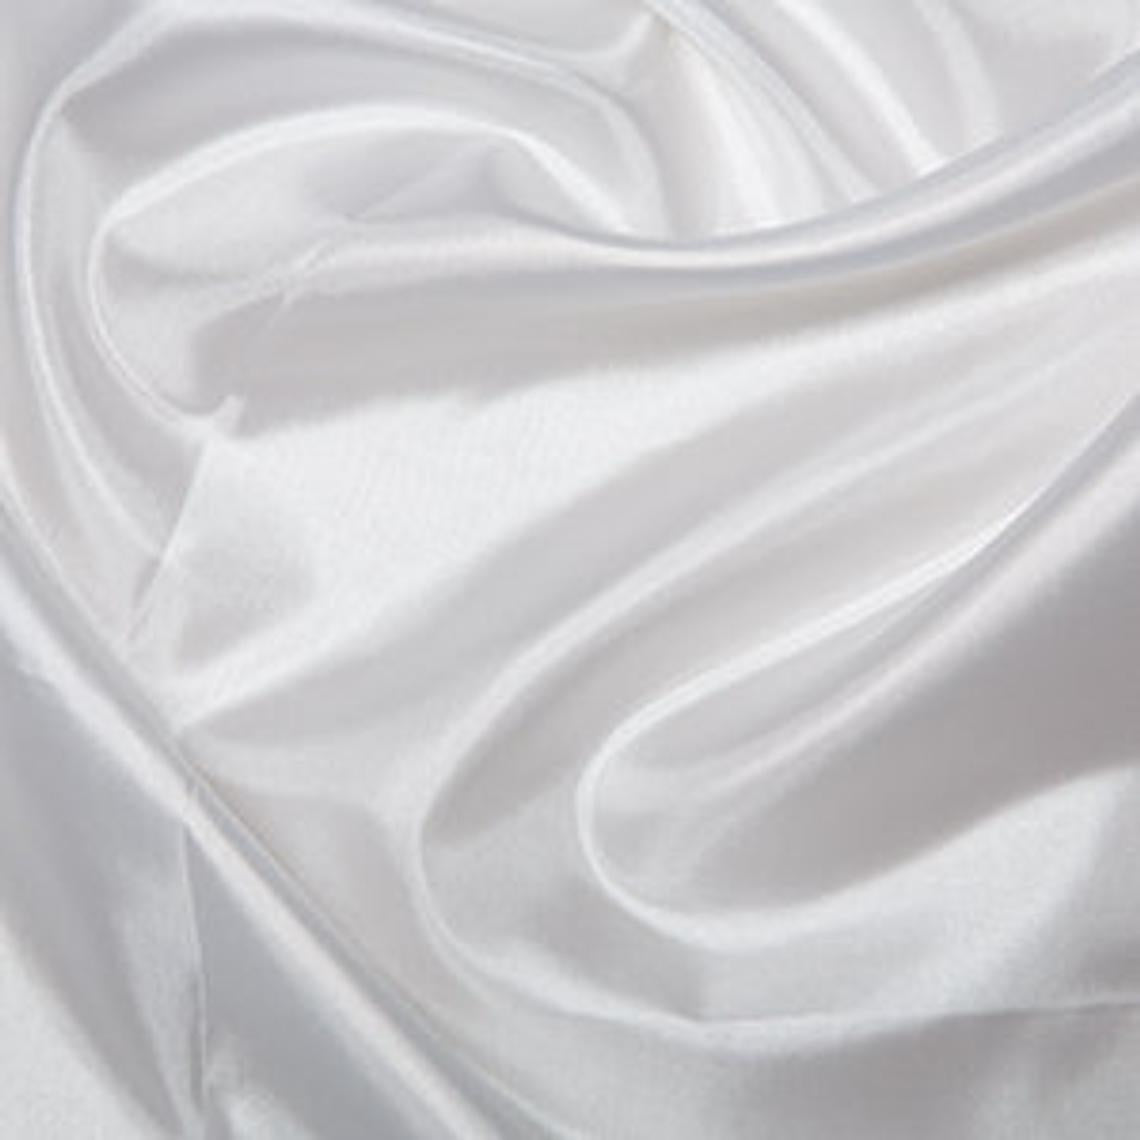 "White Silk Polyester Habotai Lining Clothes Dresses 58"" Wide Fabric Smooth Lustrous Lightweight Material 5 Metres"